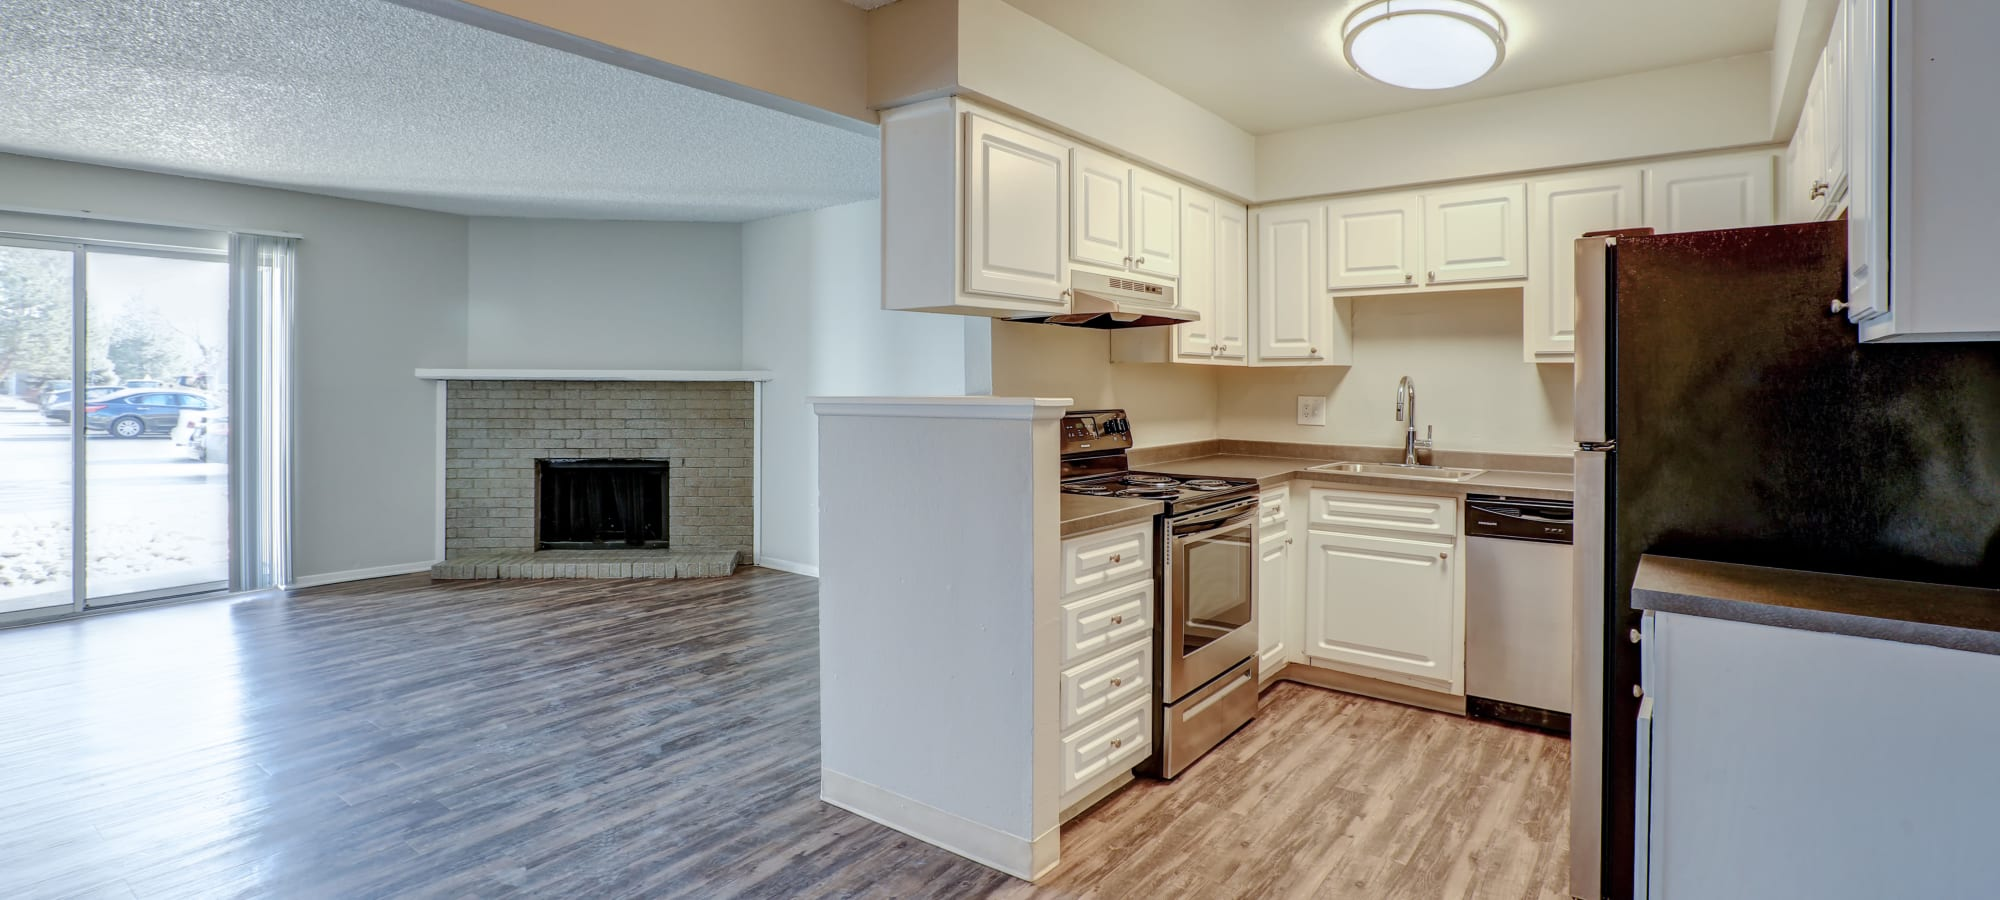 Welcome to Montair Apartment Homes in Thornton, CO